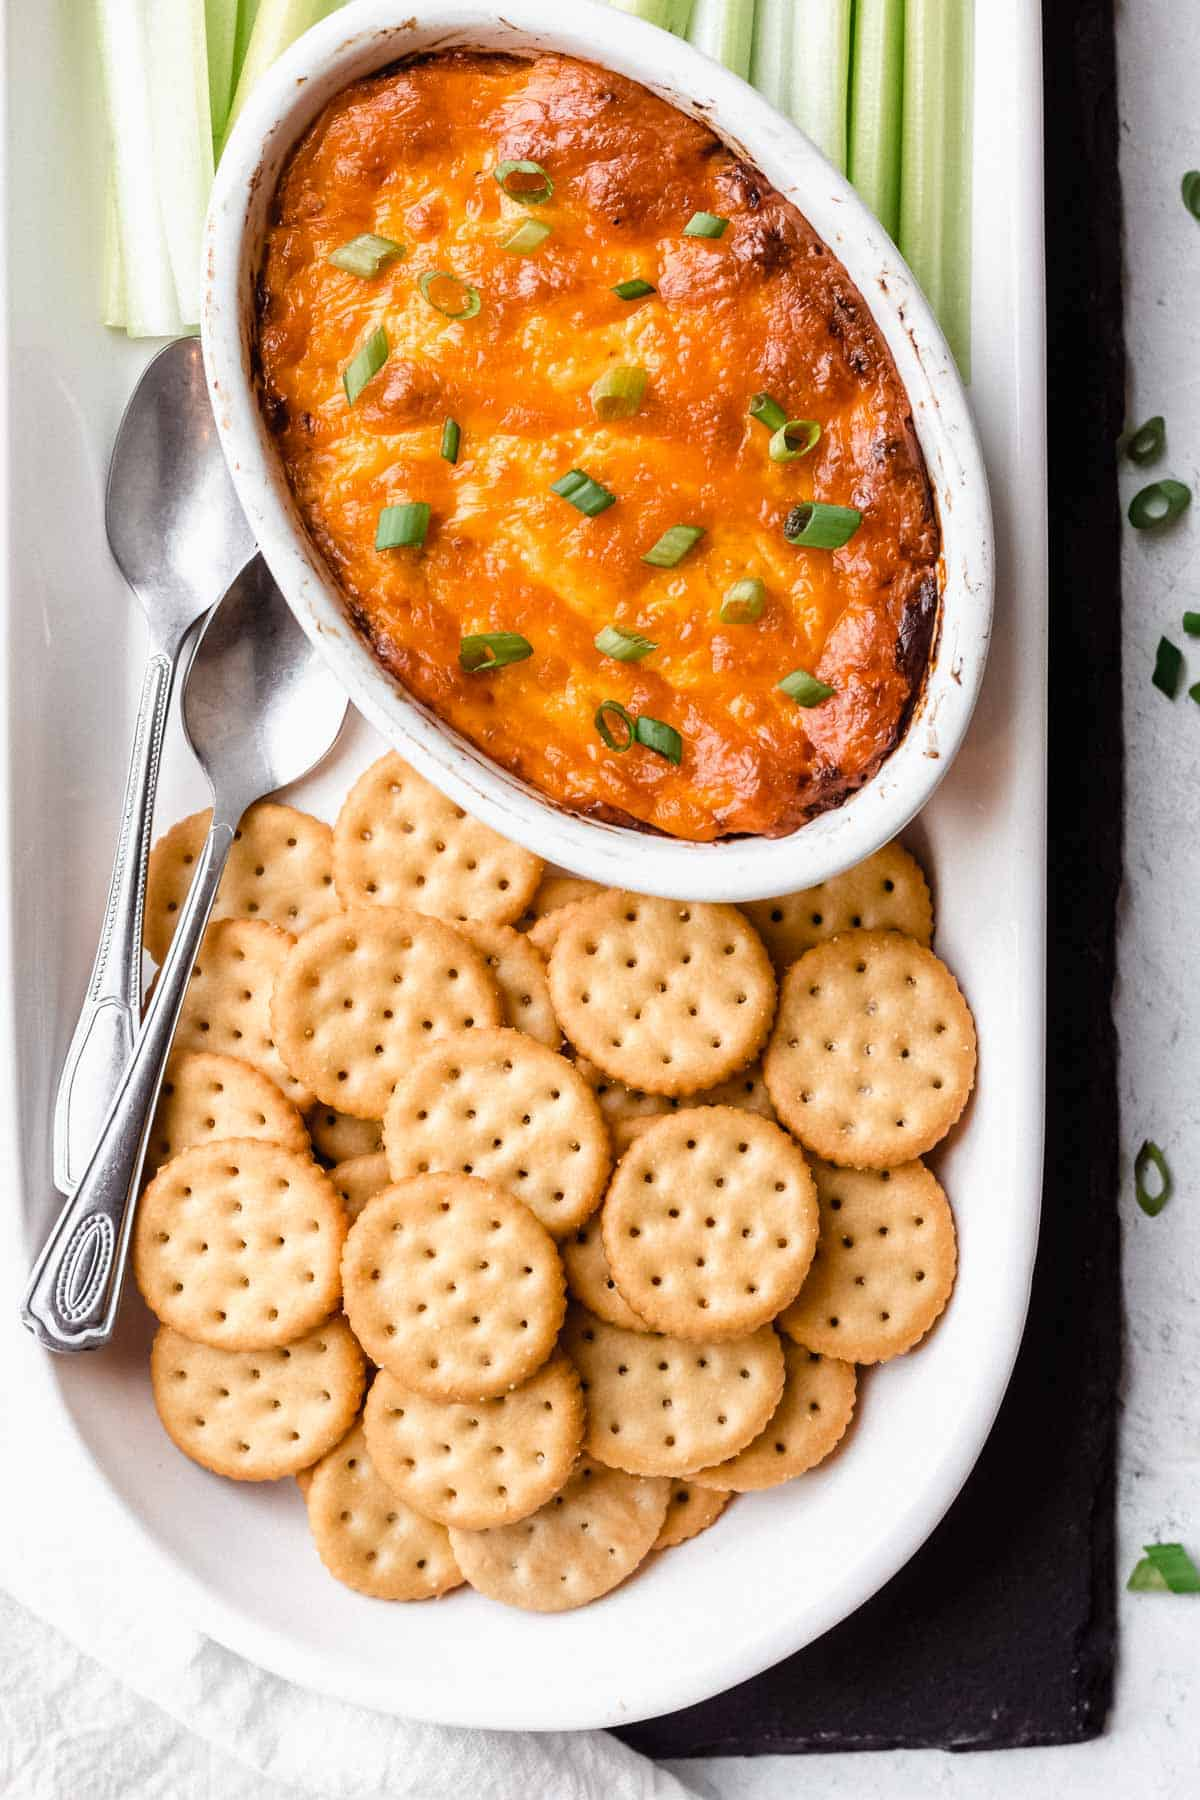 Overhead of barbecue chicken dip in an oval white dish on an oblong dish with crackers, celery sticks, and 2 spoons